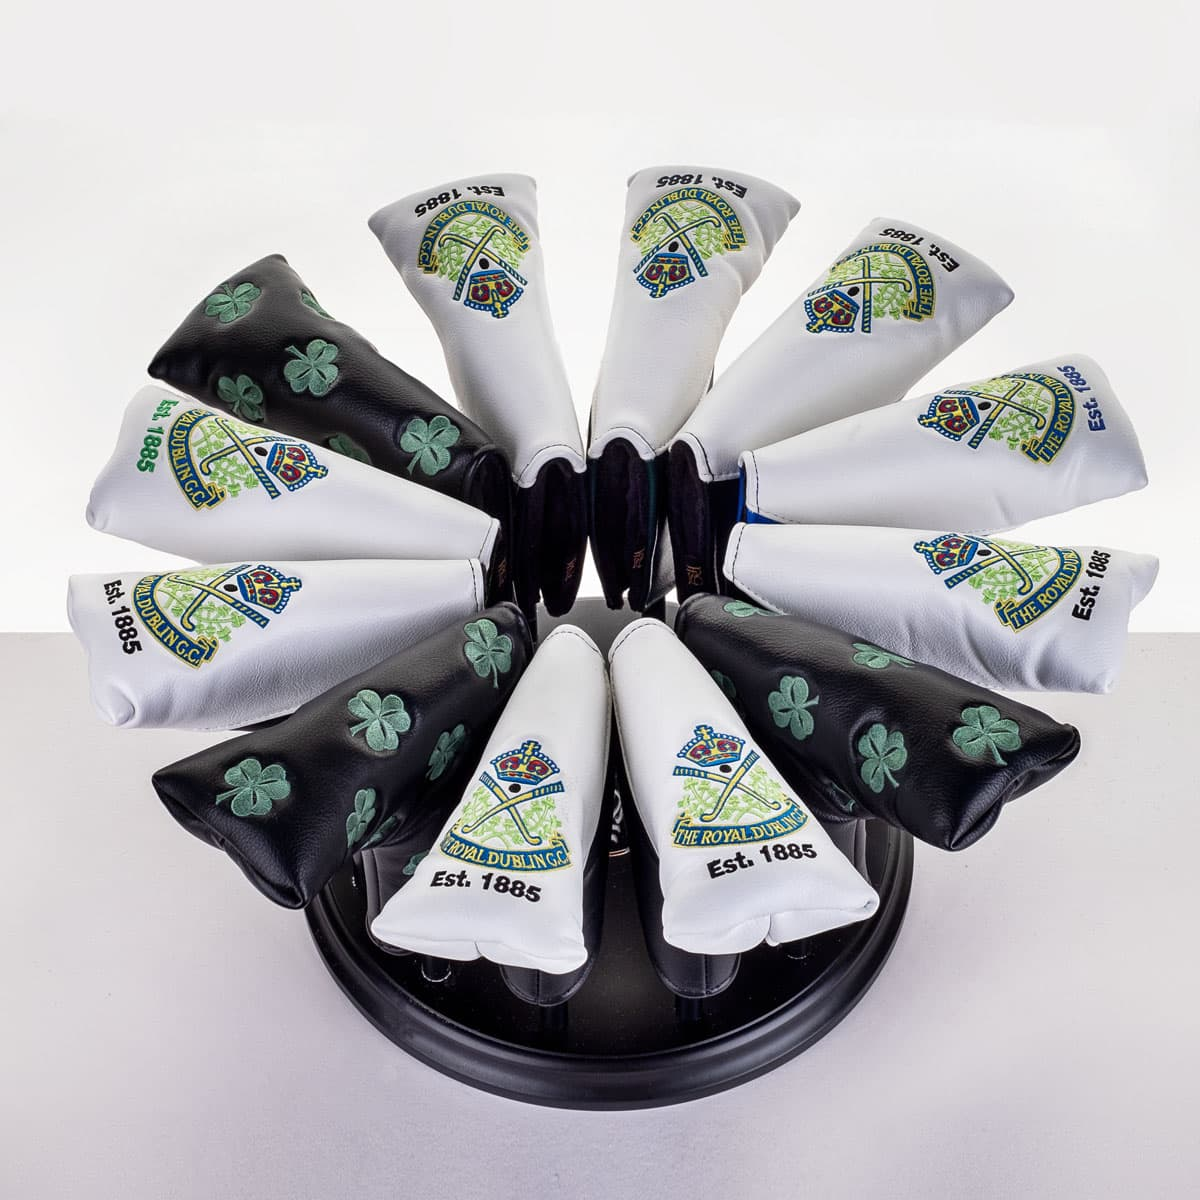 Blade putter covers €39.95